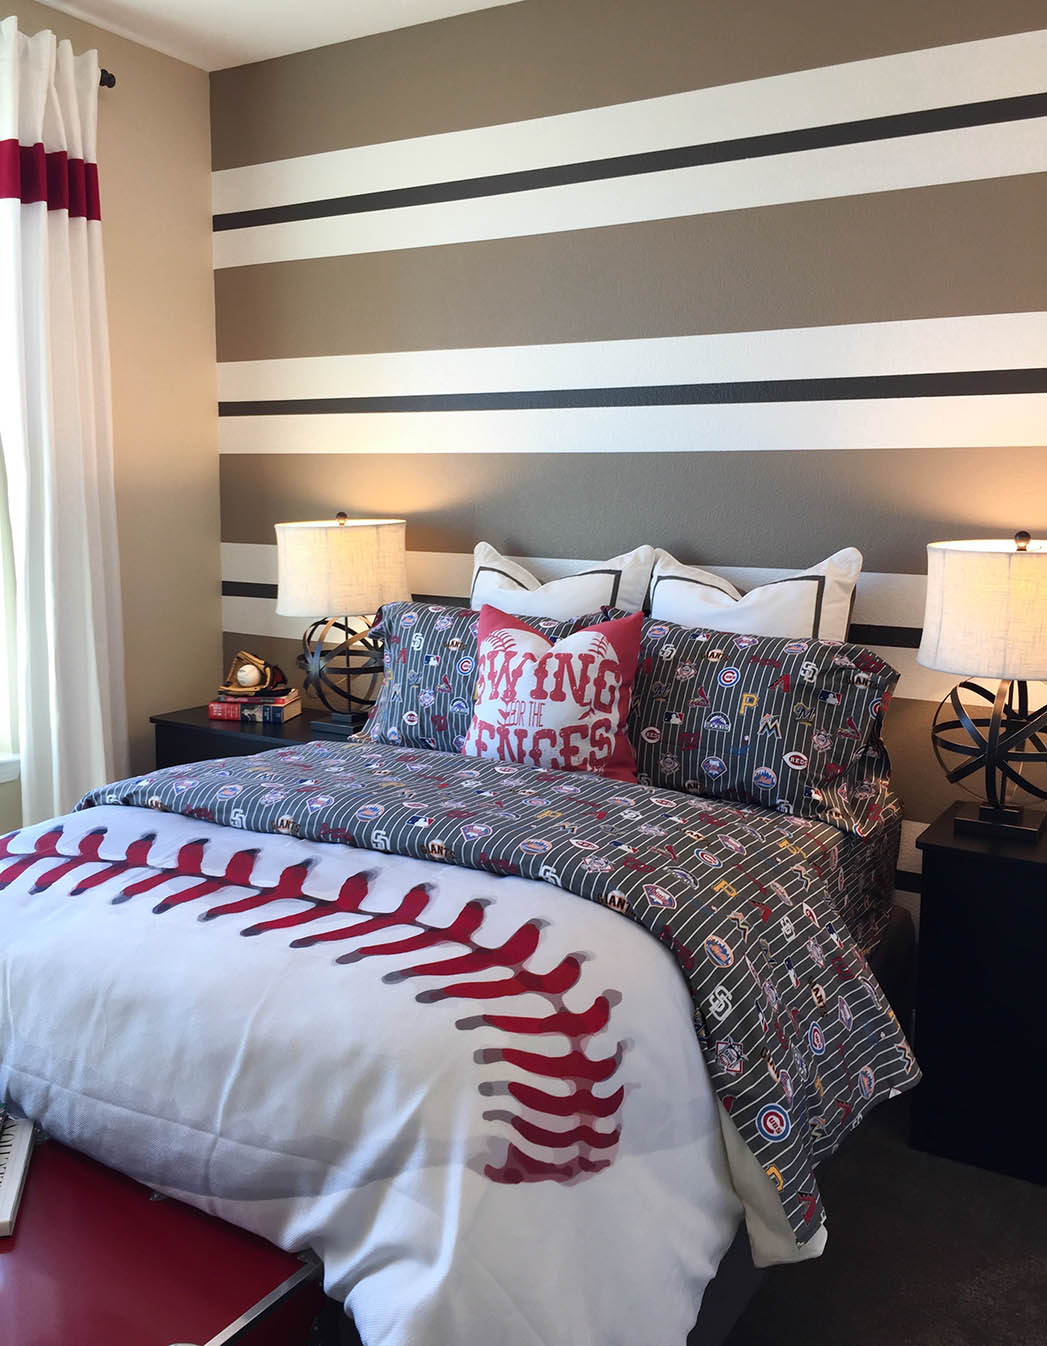 Baseball-Themed Variegated Stripe Painted Wall at Ruby Meadows by Meritage Homes